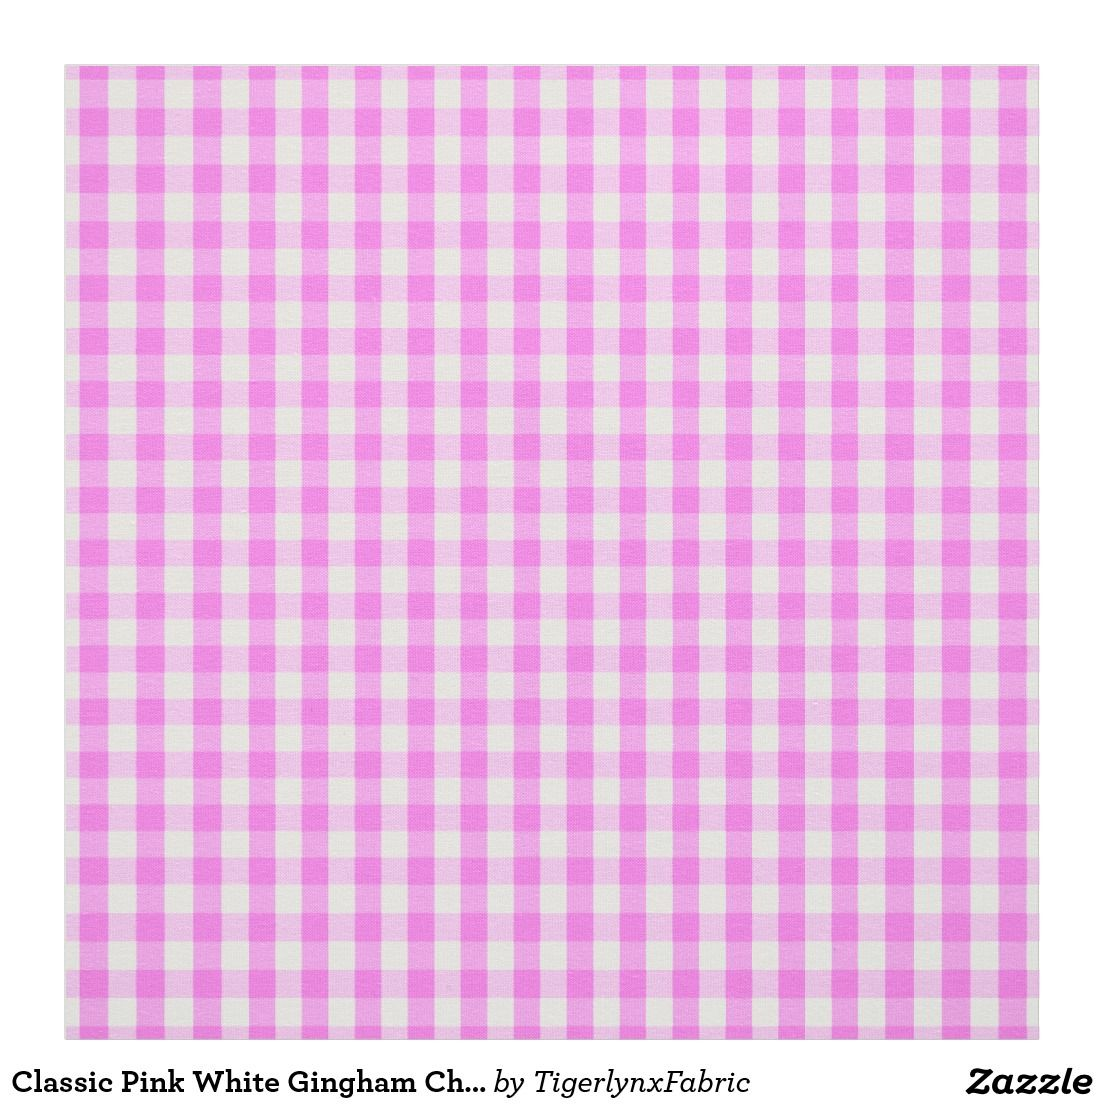 Classic Pink White Gingham Check Pattern Fabric (With